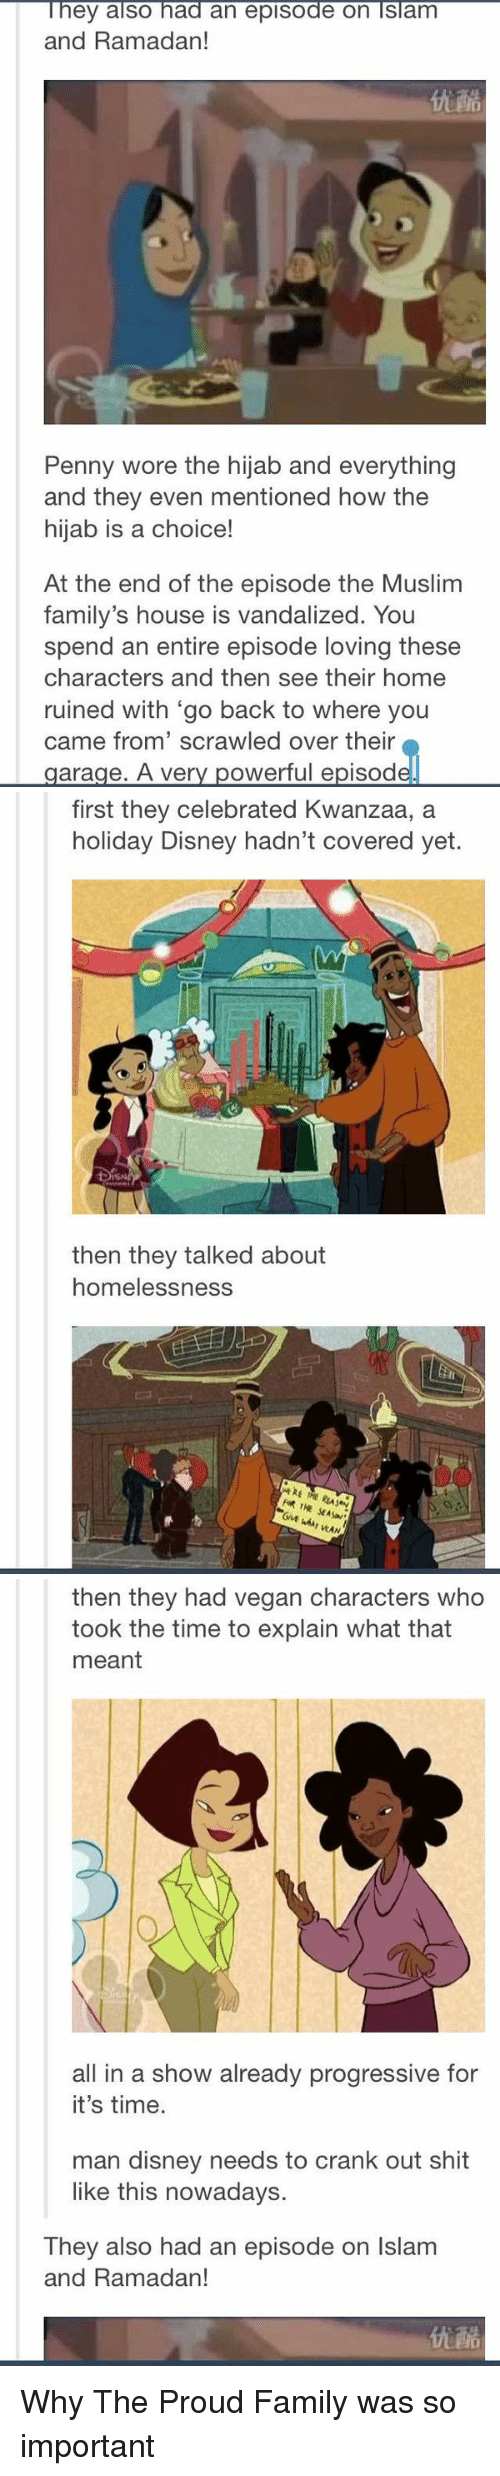 Blackpeopletwitter disney and family they also had an episode on slam and ramadan